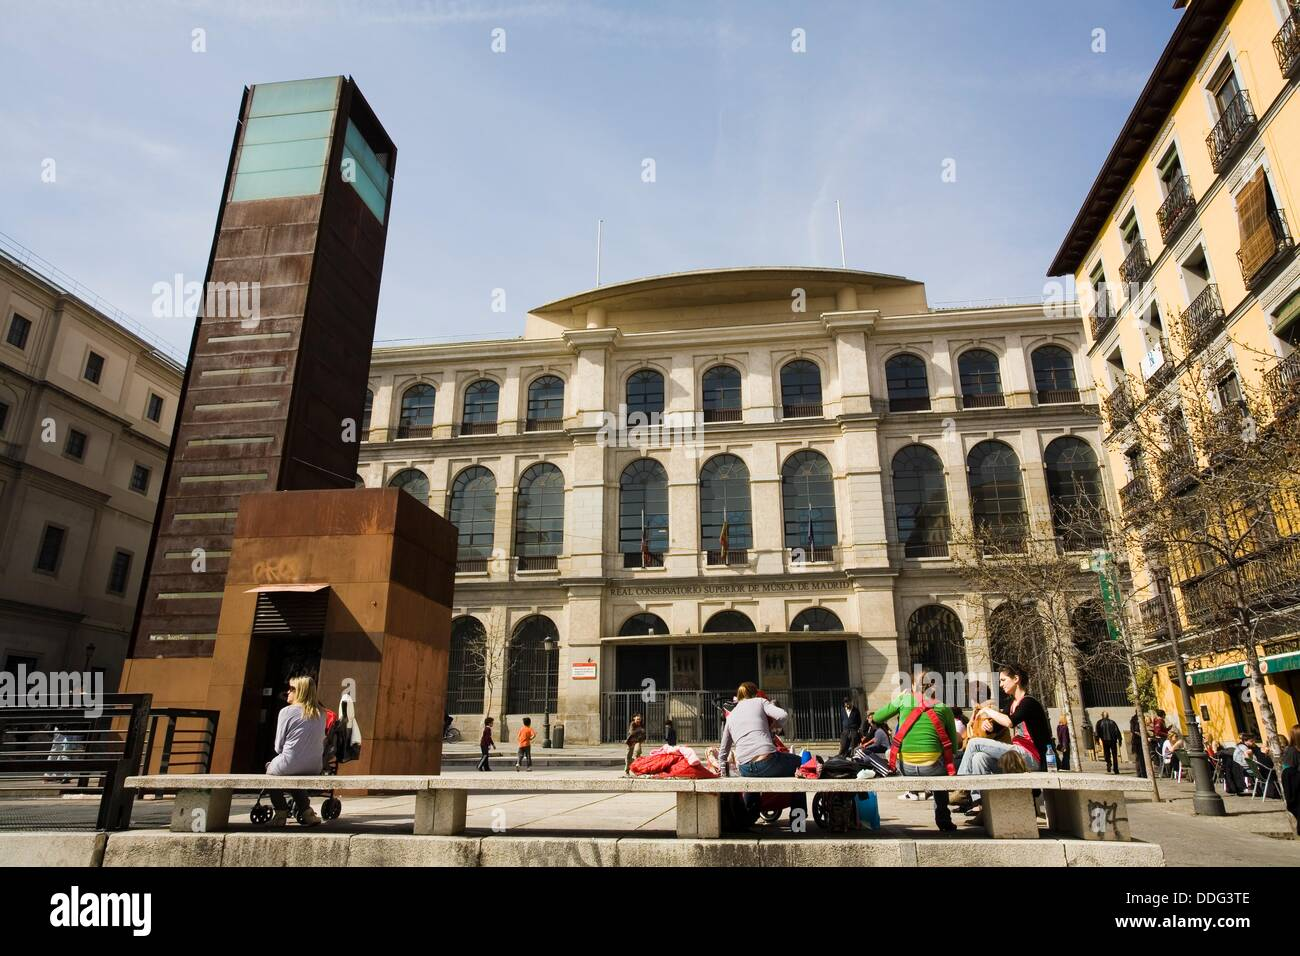 Real Conservatorio Superior De Musica Madrid Spain Stock Photo